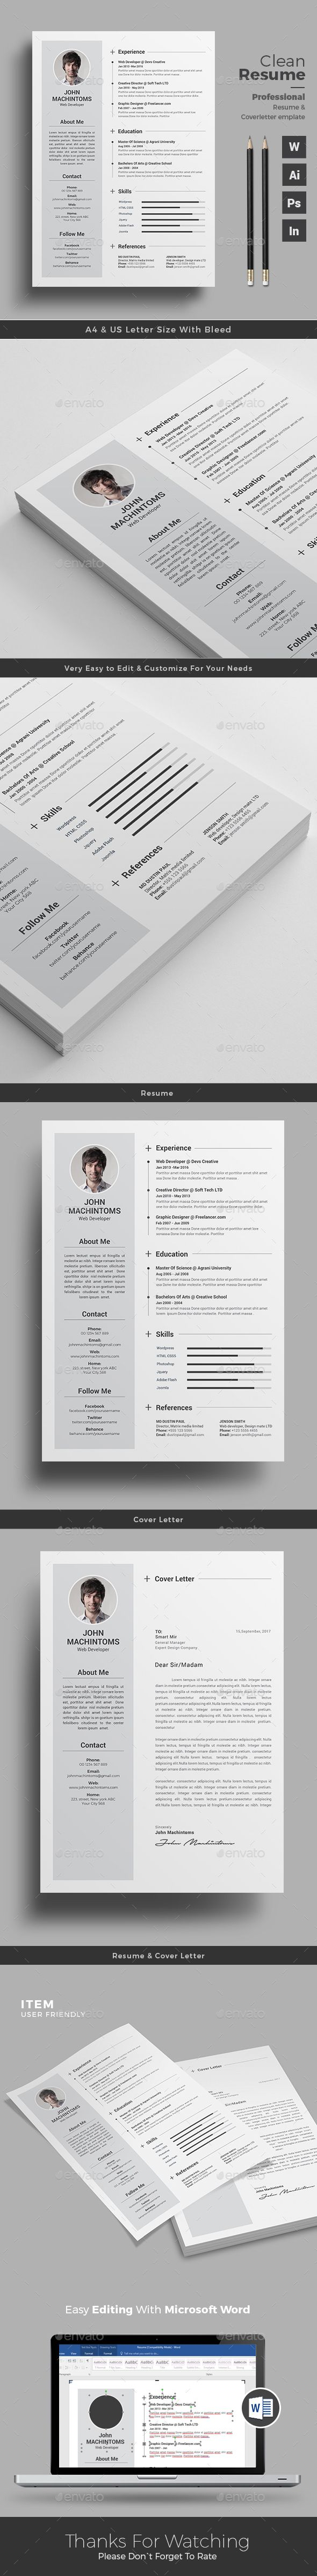 Clean Professional Resume Word Template  Ms Word  Psd  Ai